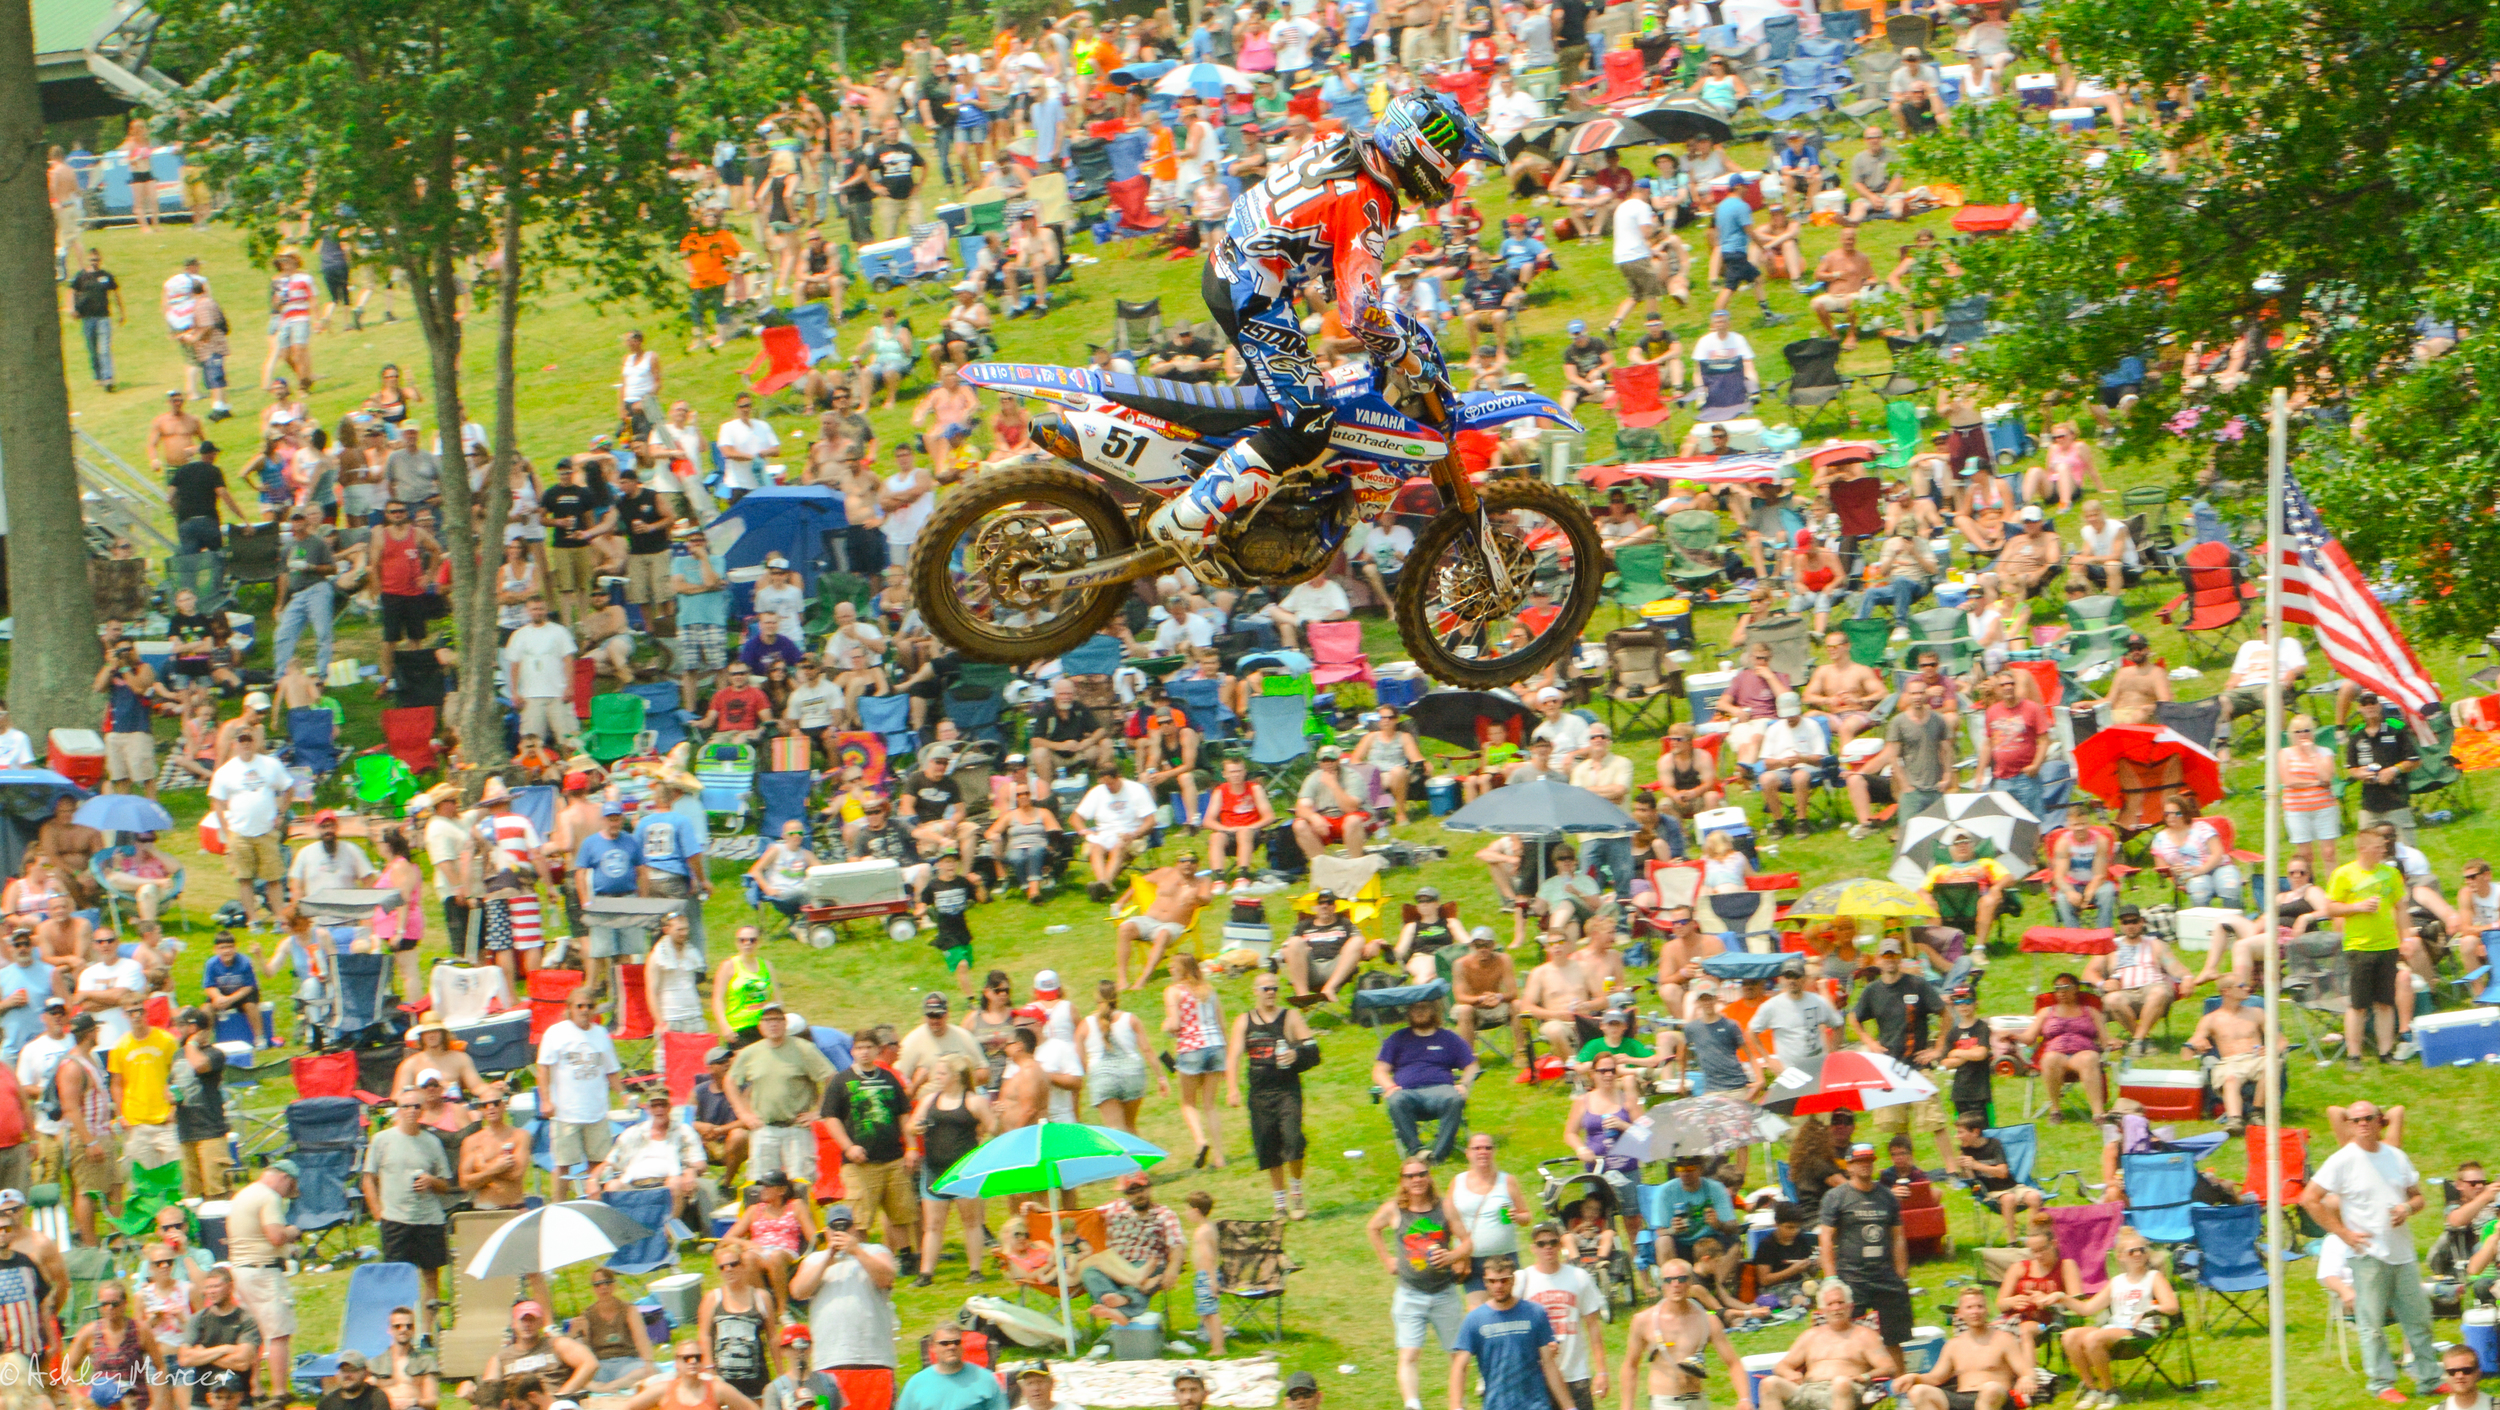 red bud mx july 2015-29.jpg